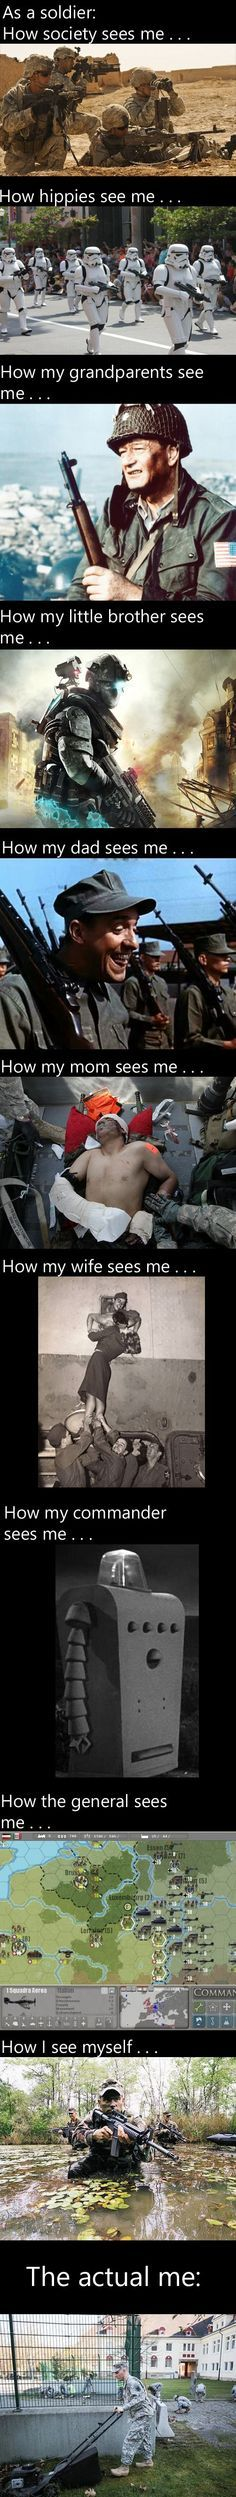 Find very good Jokes, Memes and Quotes on our site. Keep calm and have fun. Funny Pictures, Videos, Jokes & new flash games every day. Army Life, Military Life, Stupid Funny, Funny Jokes, Funny Shirts, Fun Funny, Funny Tweets, Funny Stuff, Military Jokes